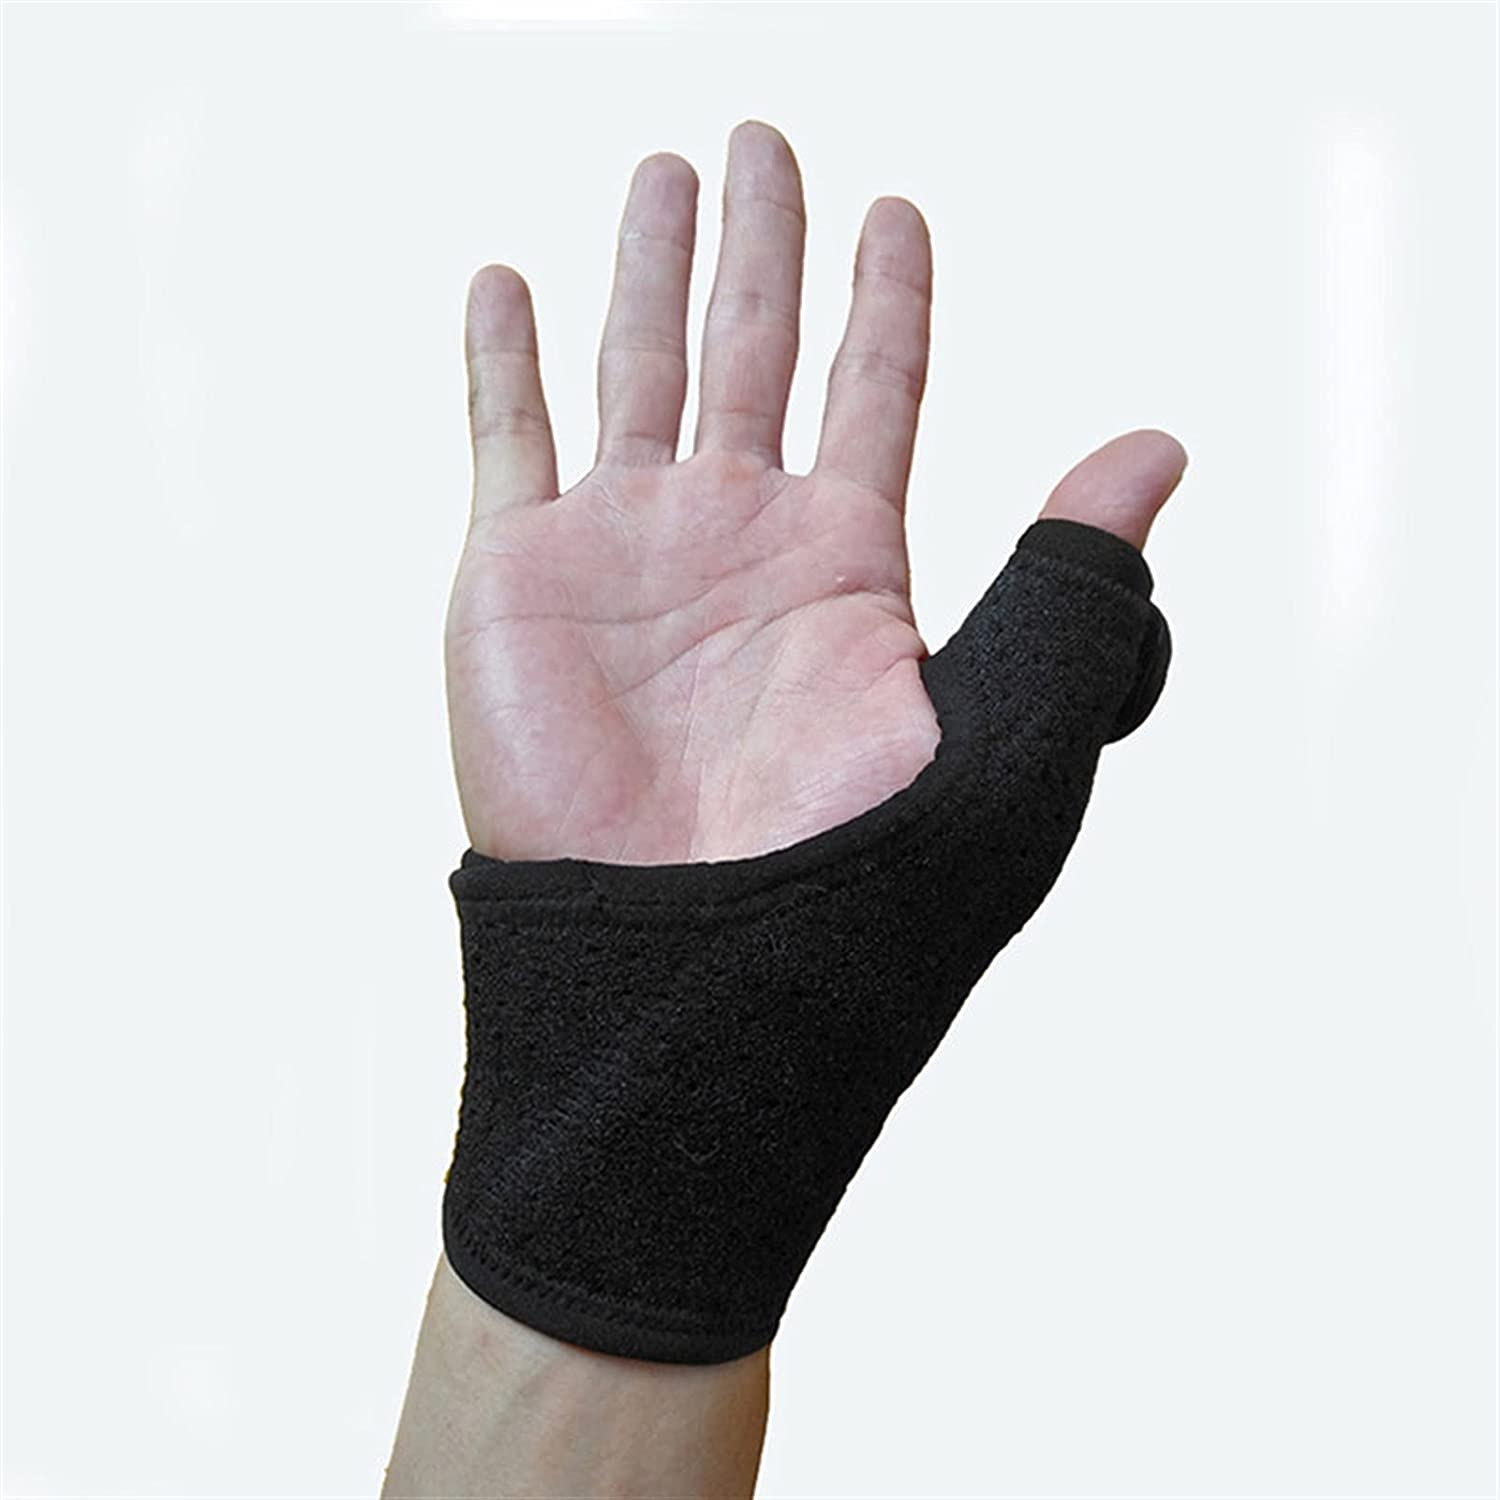 Spasm price High quality new 1PC Wrist Support Thumb Carpal Tunnel Brace Guard